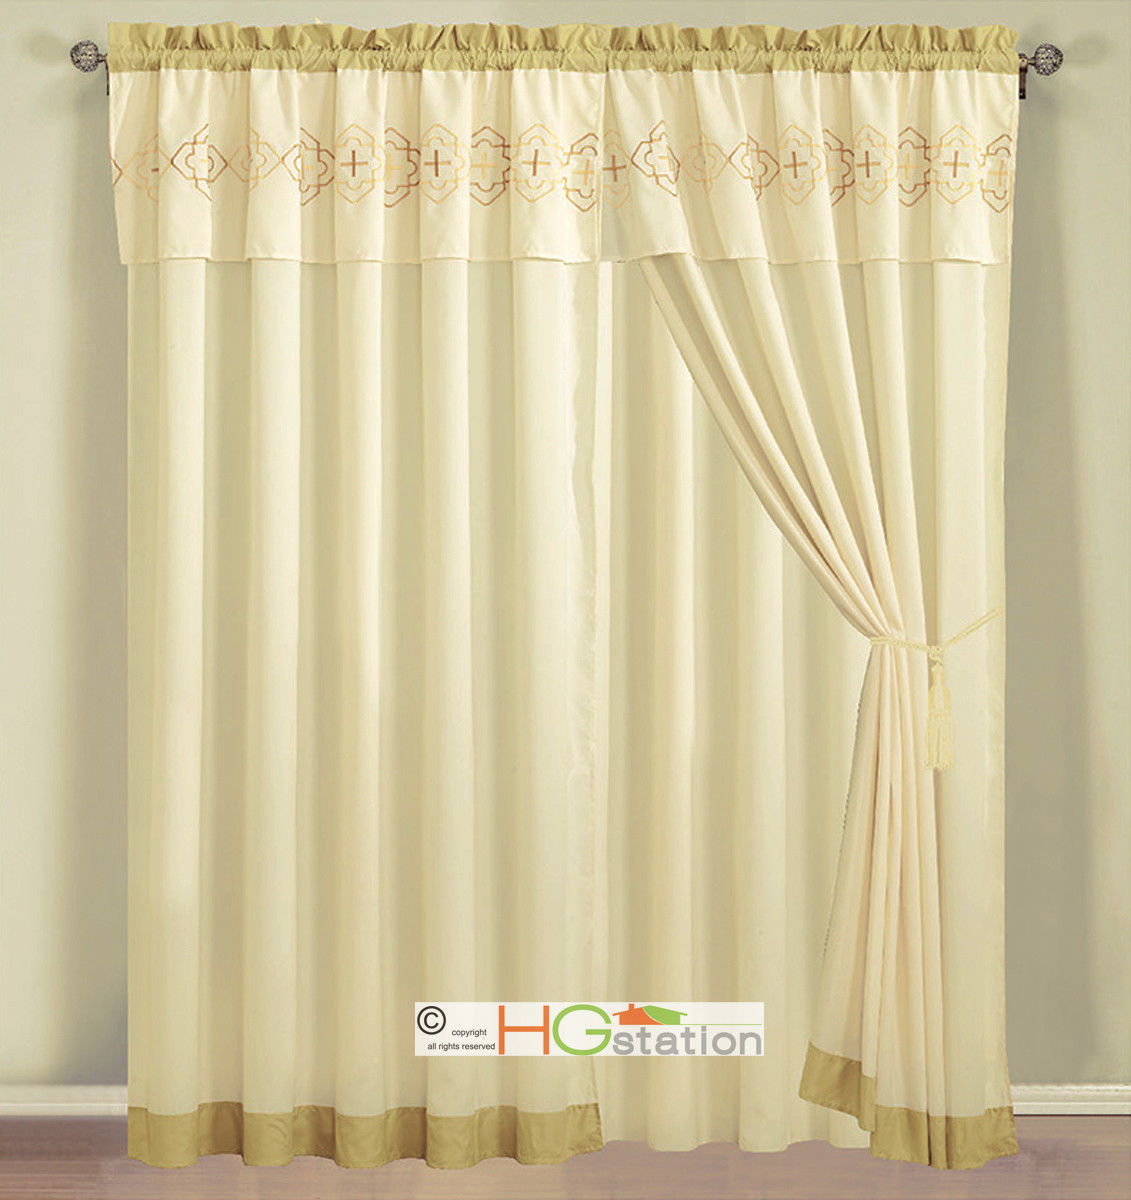 Primary image for 4-Pc Embroidery Quatrefoil Geometric Trellis Curtain Set Yellow Ivory Valance